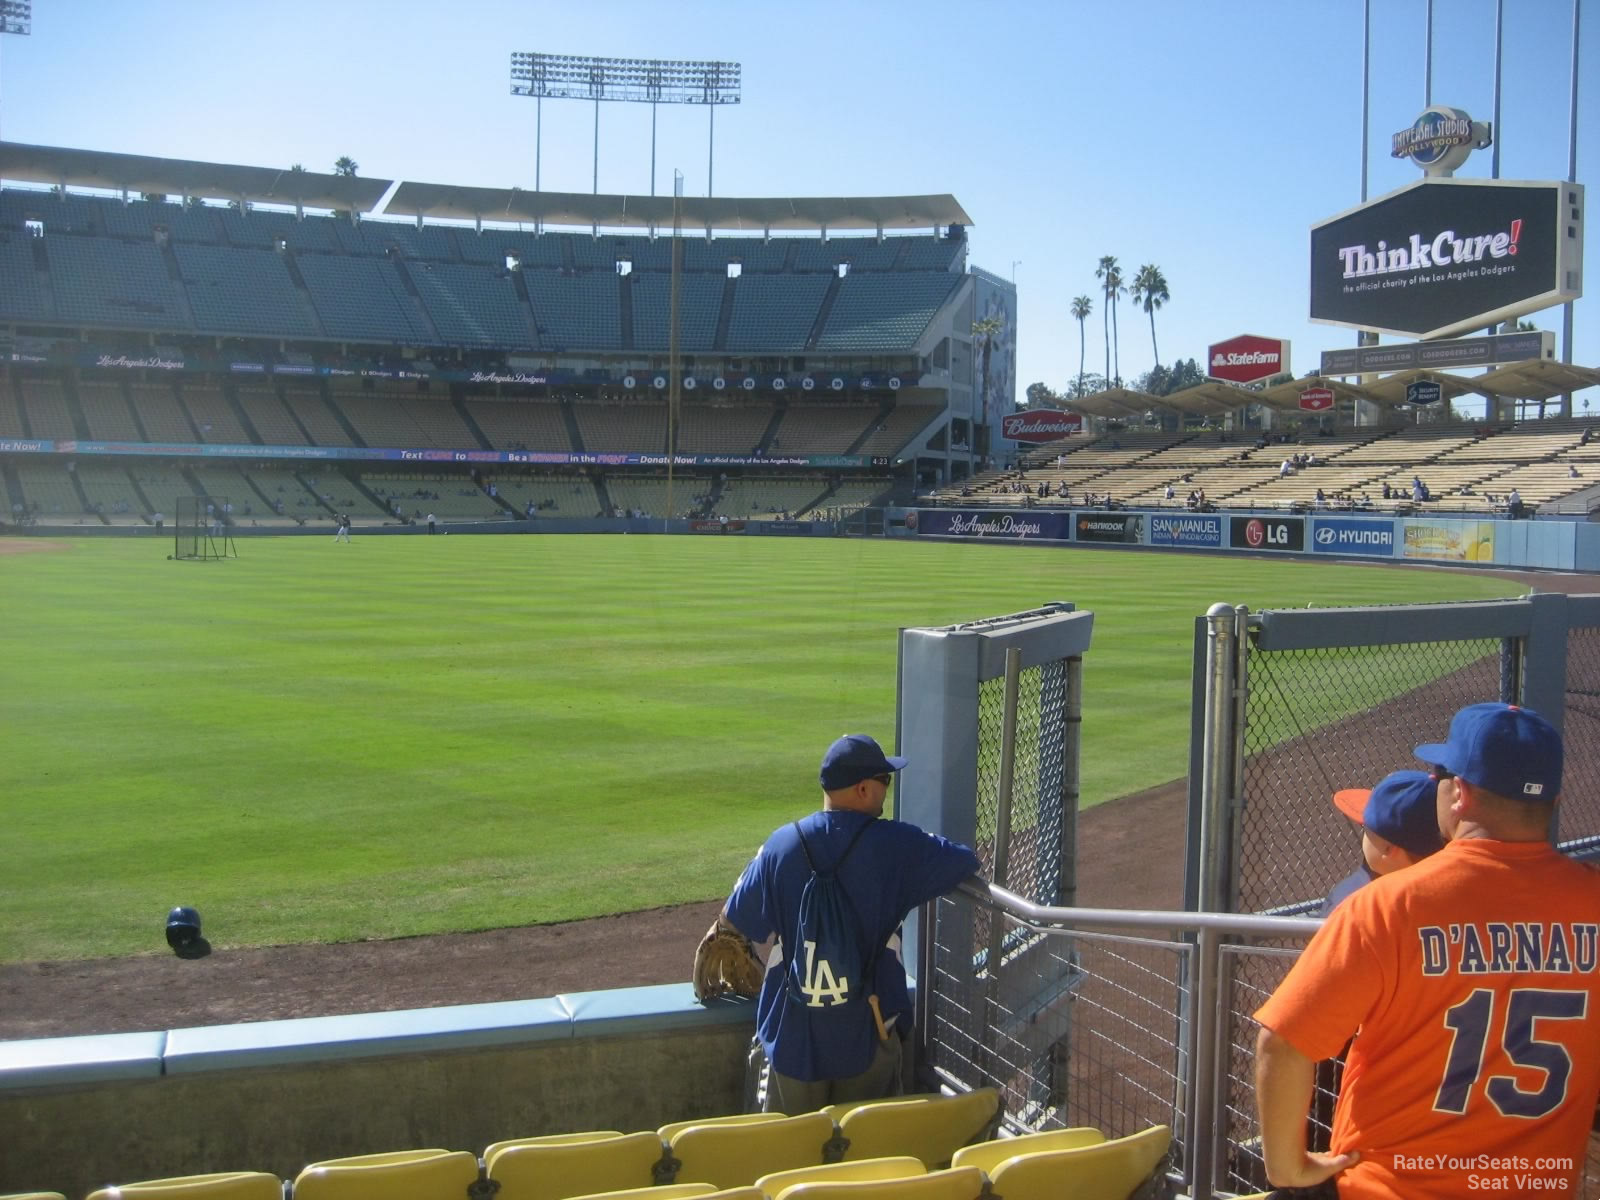 Seating Chart Dodger Stadium Cheap La Angeles Tickets With